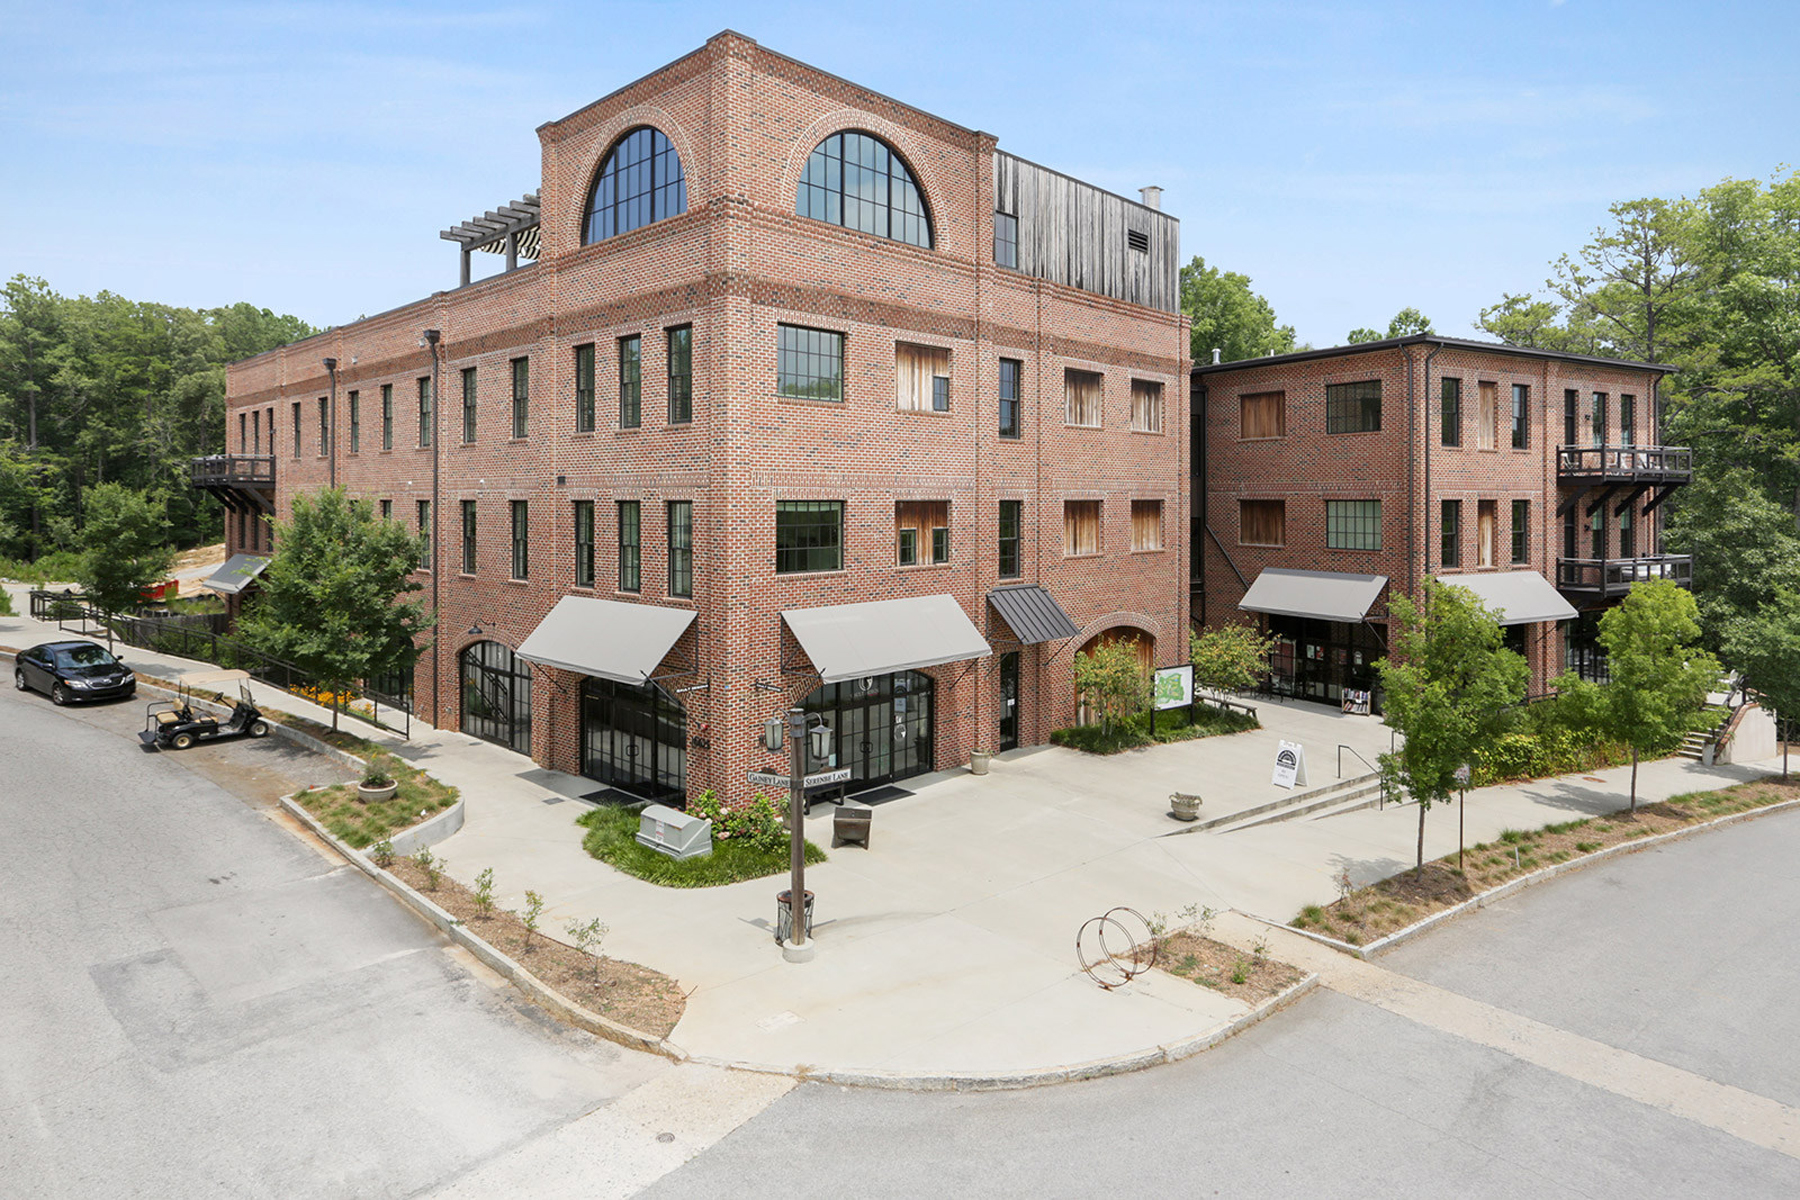 Condominiums for Sale at Two Bedroom Two Bath Unit in Serenbe Textile Lofts 10625 Serenbe Lane No. 207 Chattahoochee Hills, Georgia 30268 United States